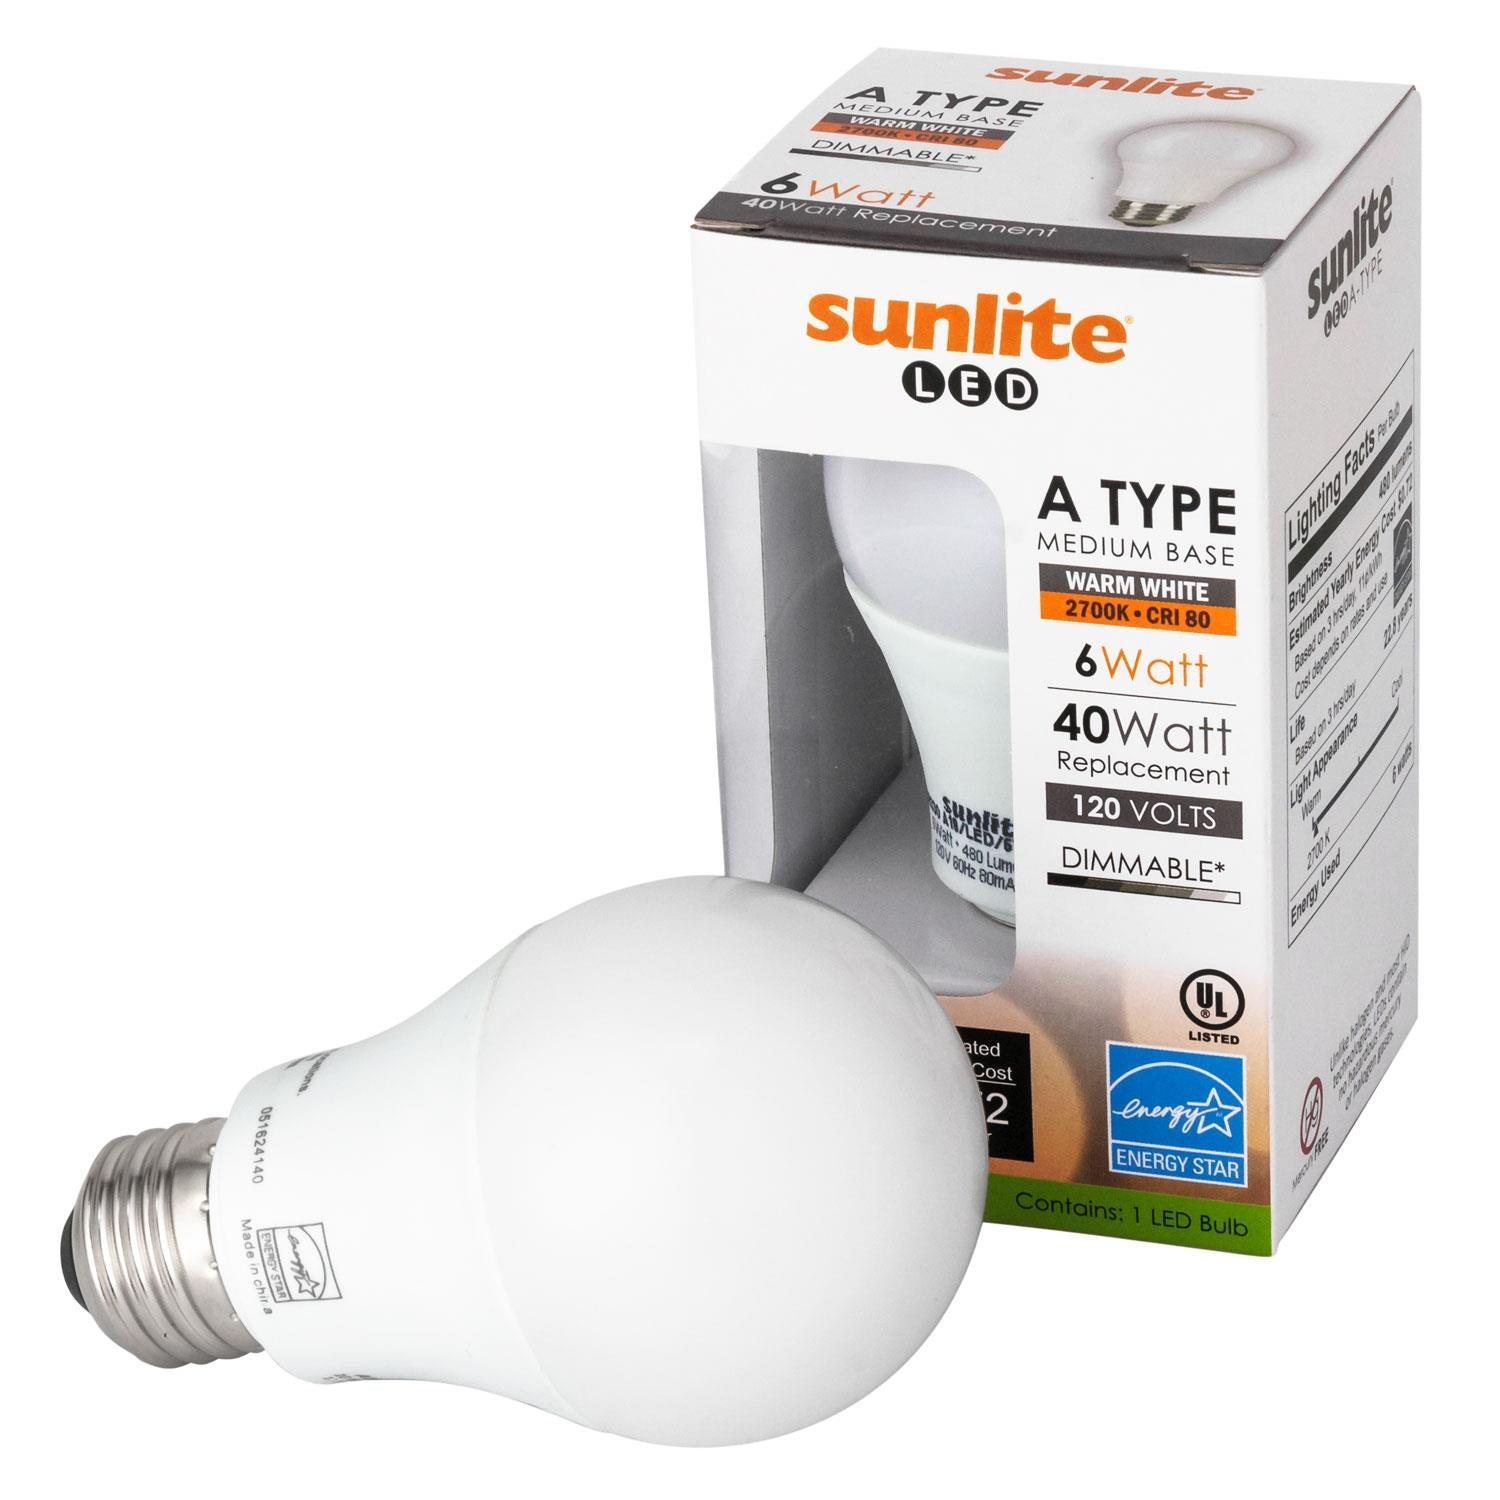 Sunlite 88331-SU LED Household 6w A19 Light Bulbs Dimmable 4000K Cool White